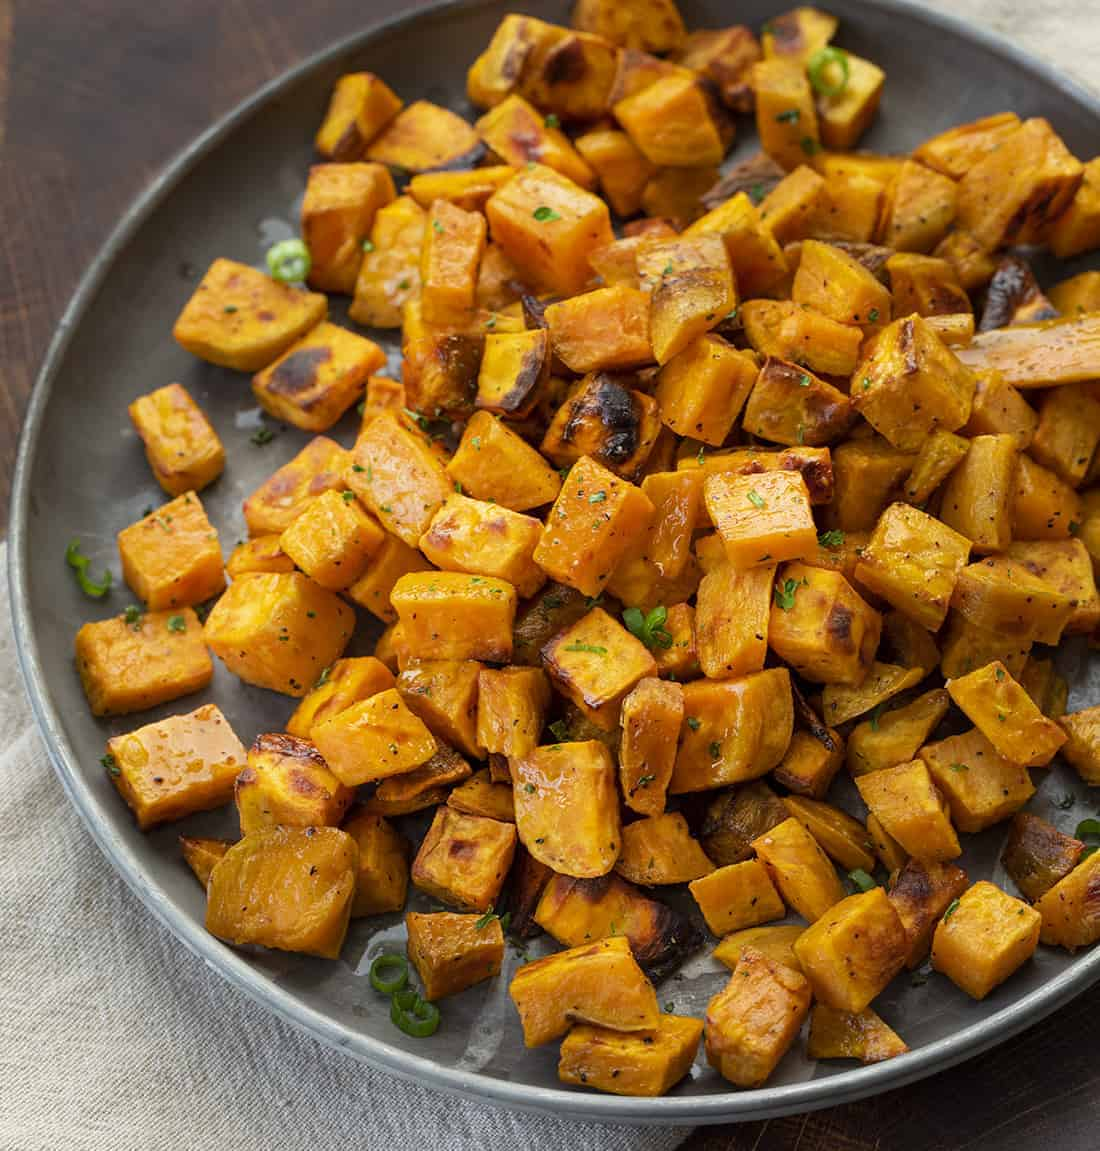 Roasted Sweet Potatoes on Plate